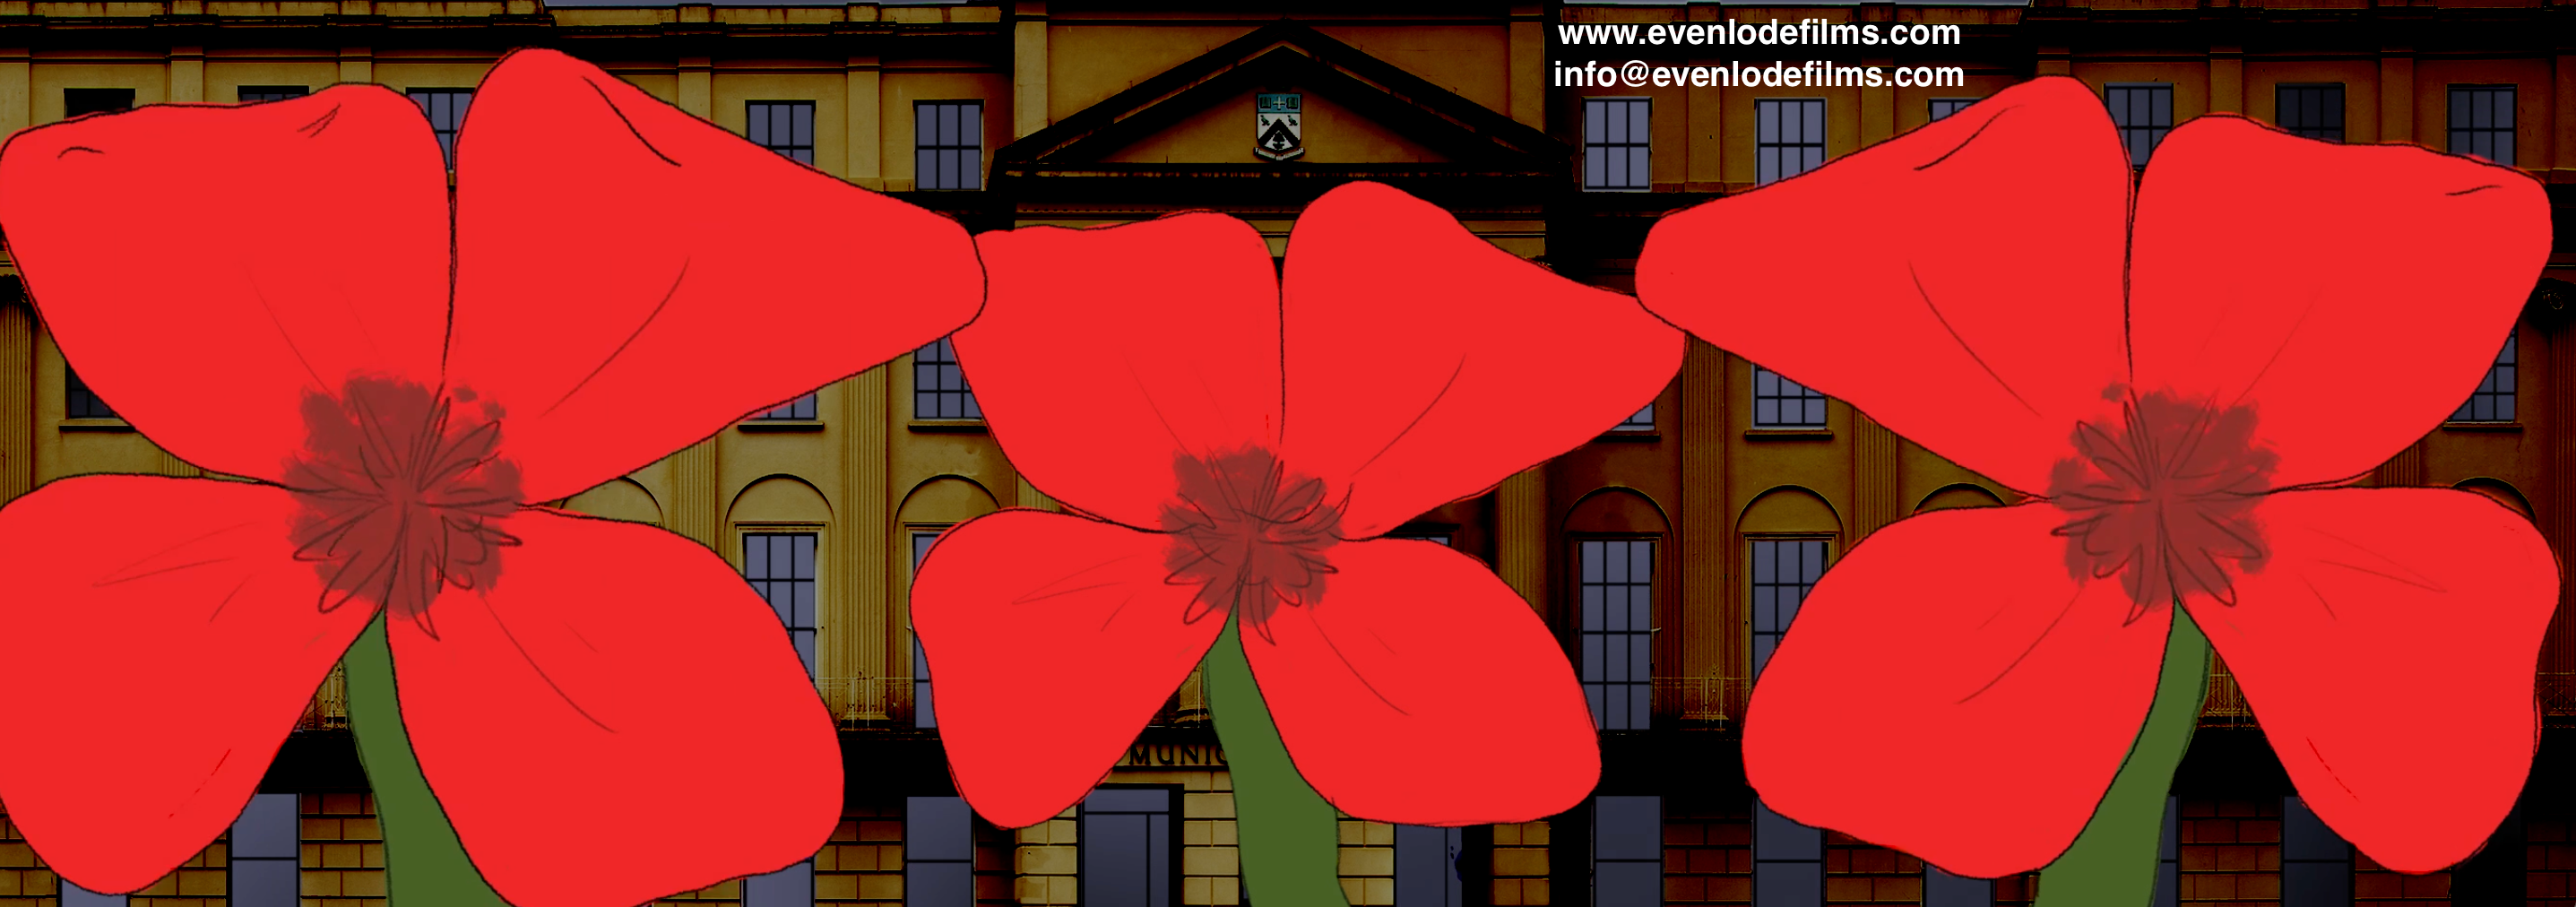 Evenlode Films - Animation - WW1 - Chelt